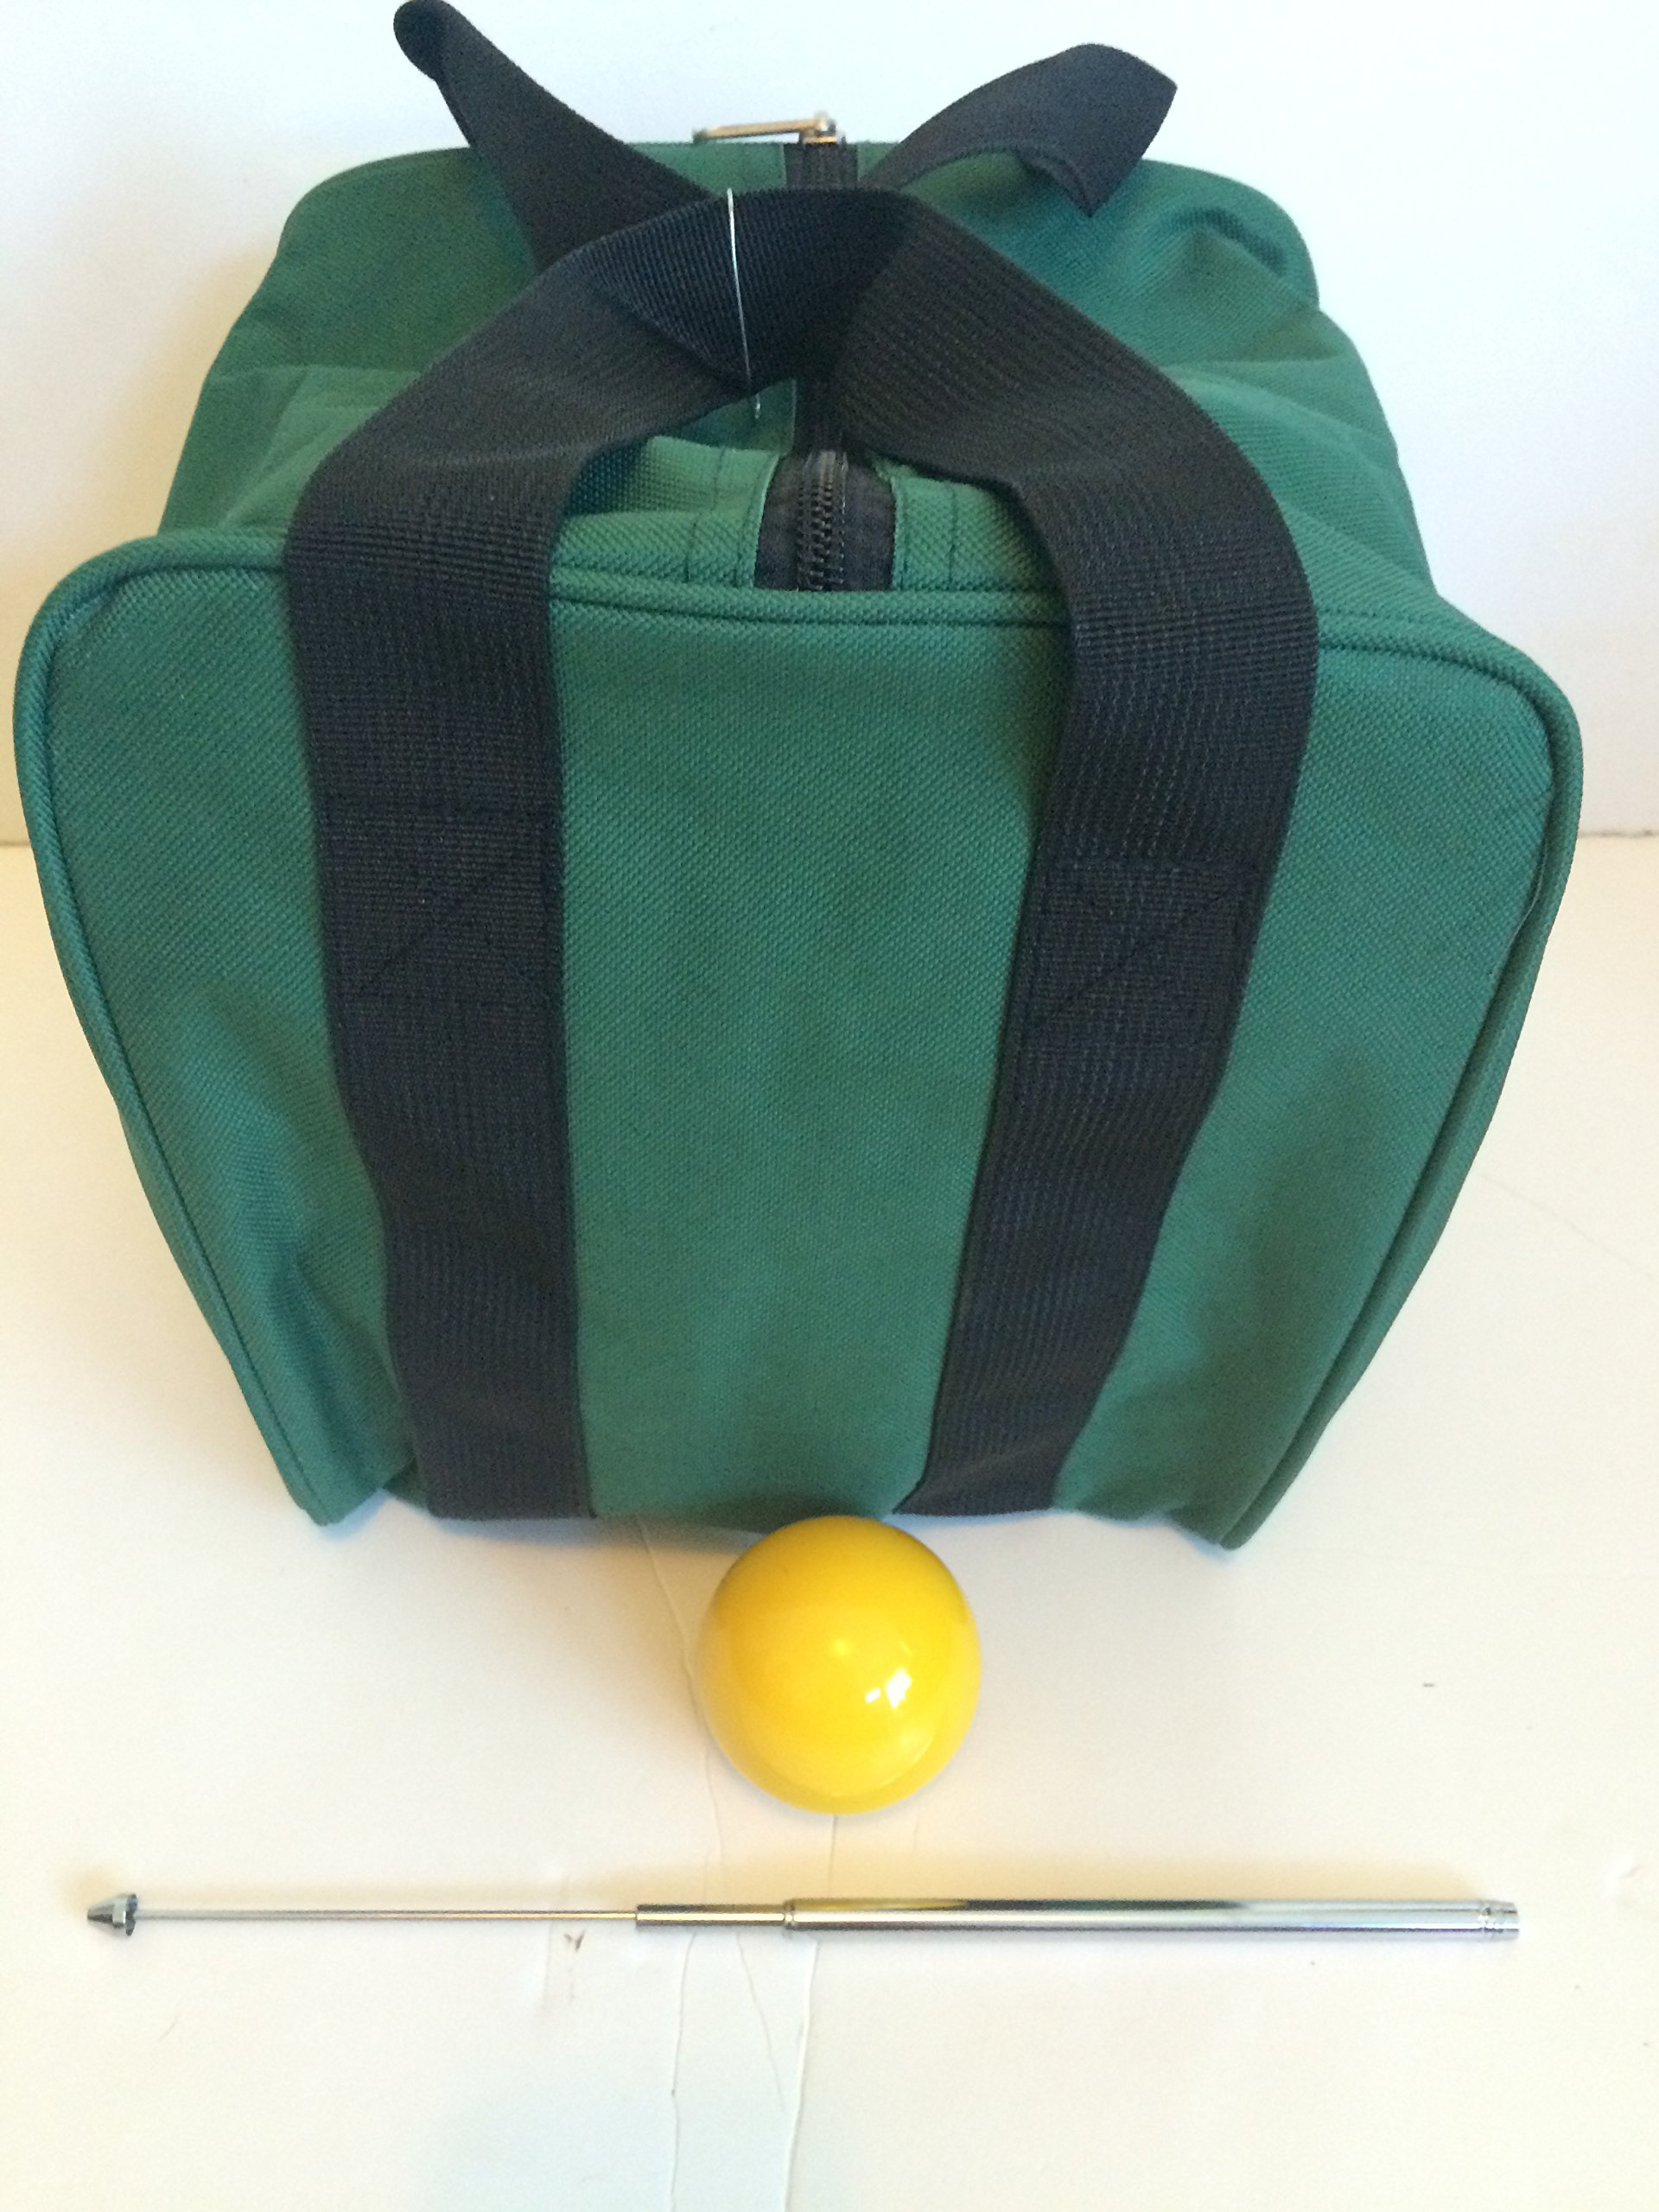 Unique Bocce Accessories Package - Extra Heavy Duty Nylon Bocce Bag (Green with Black Handles), Yellow pallina, Extendable Measuring Device